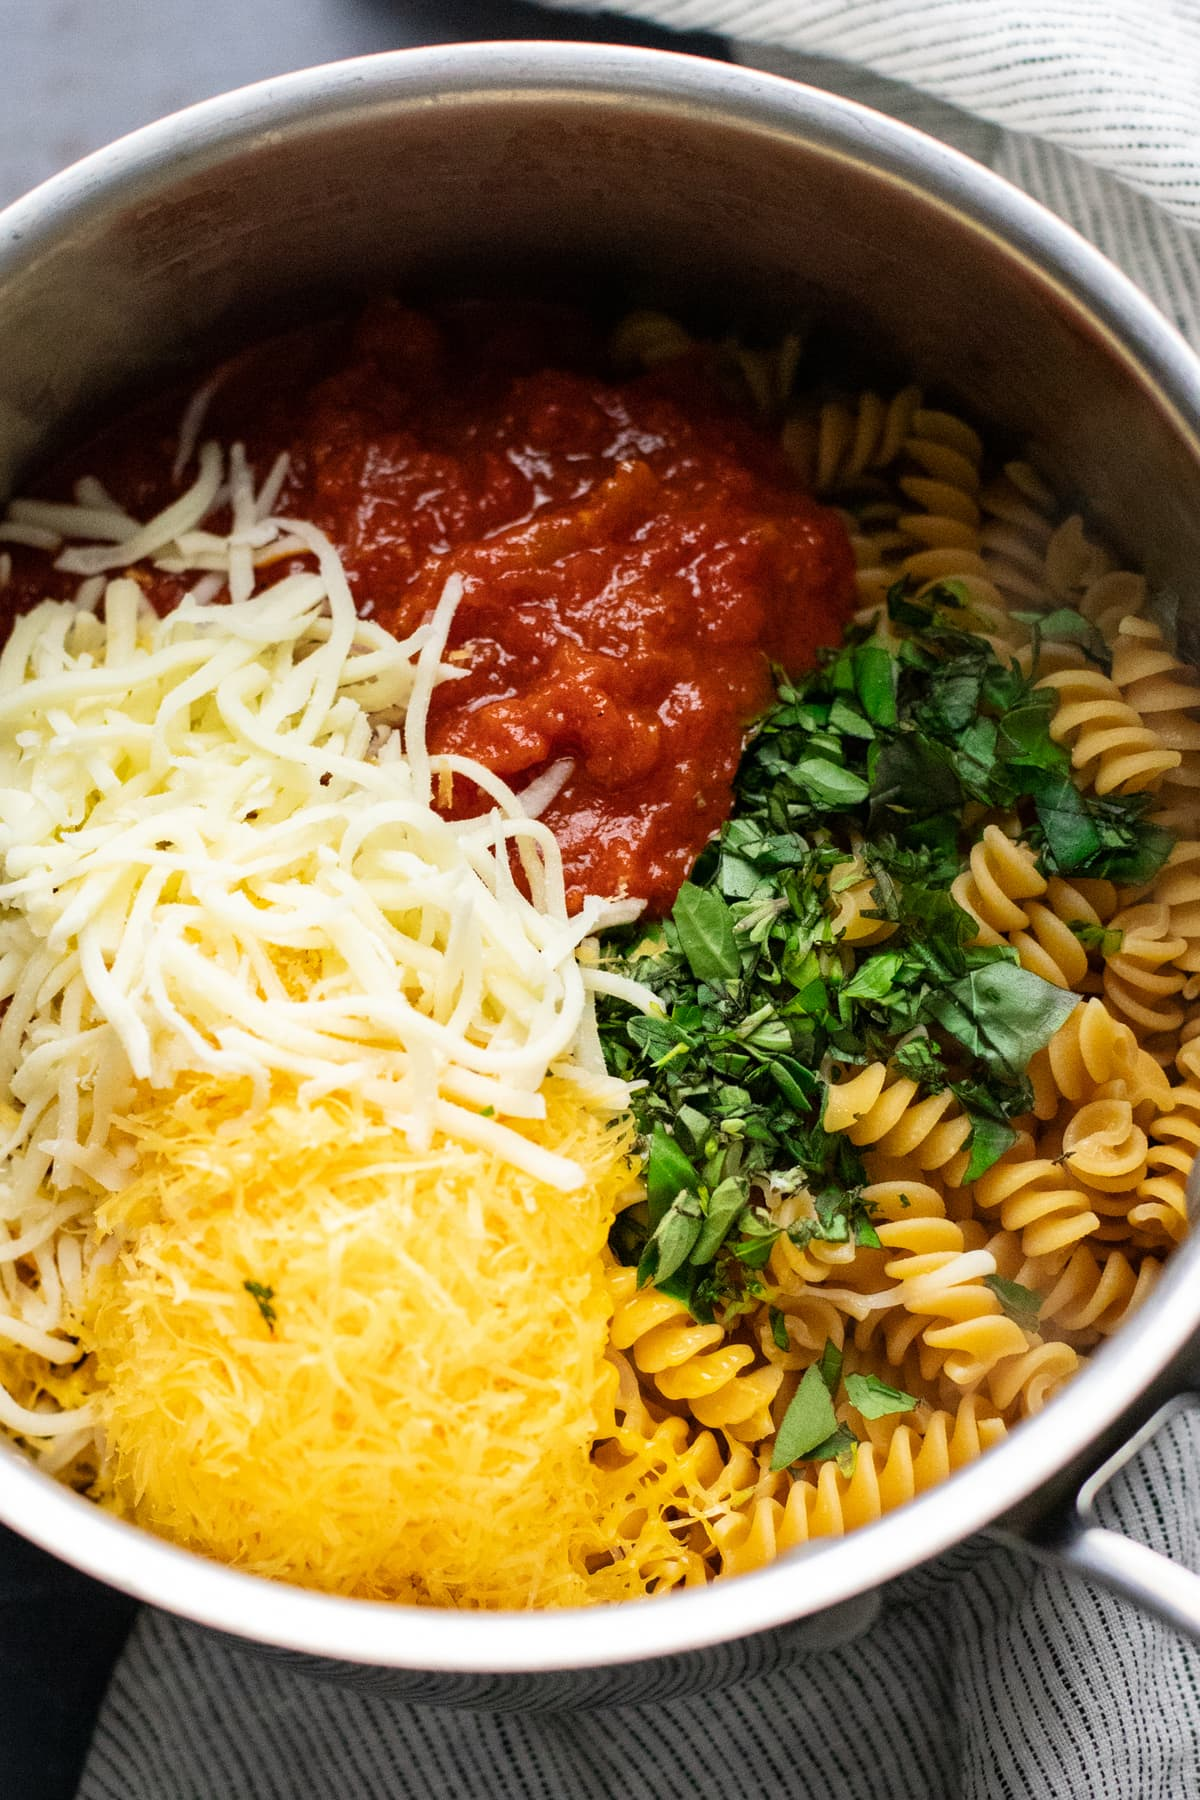 a pot with cheese, red tomato sauce, fresh herbs, and rotini pasta in it.